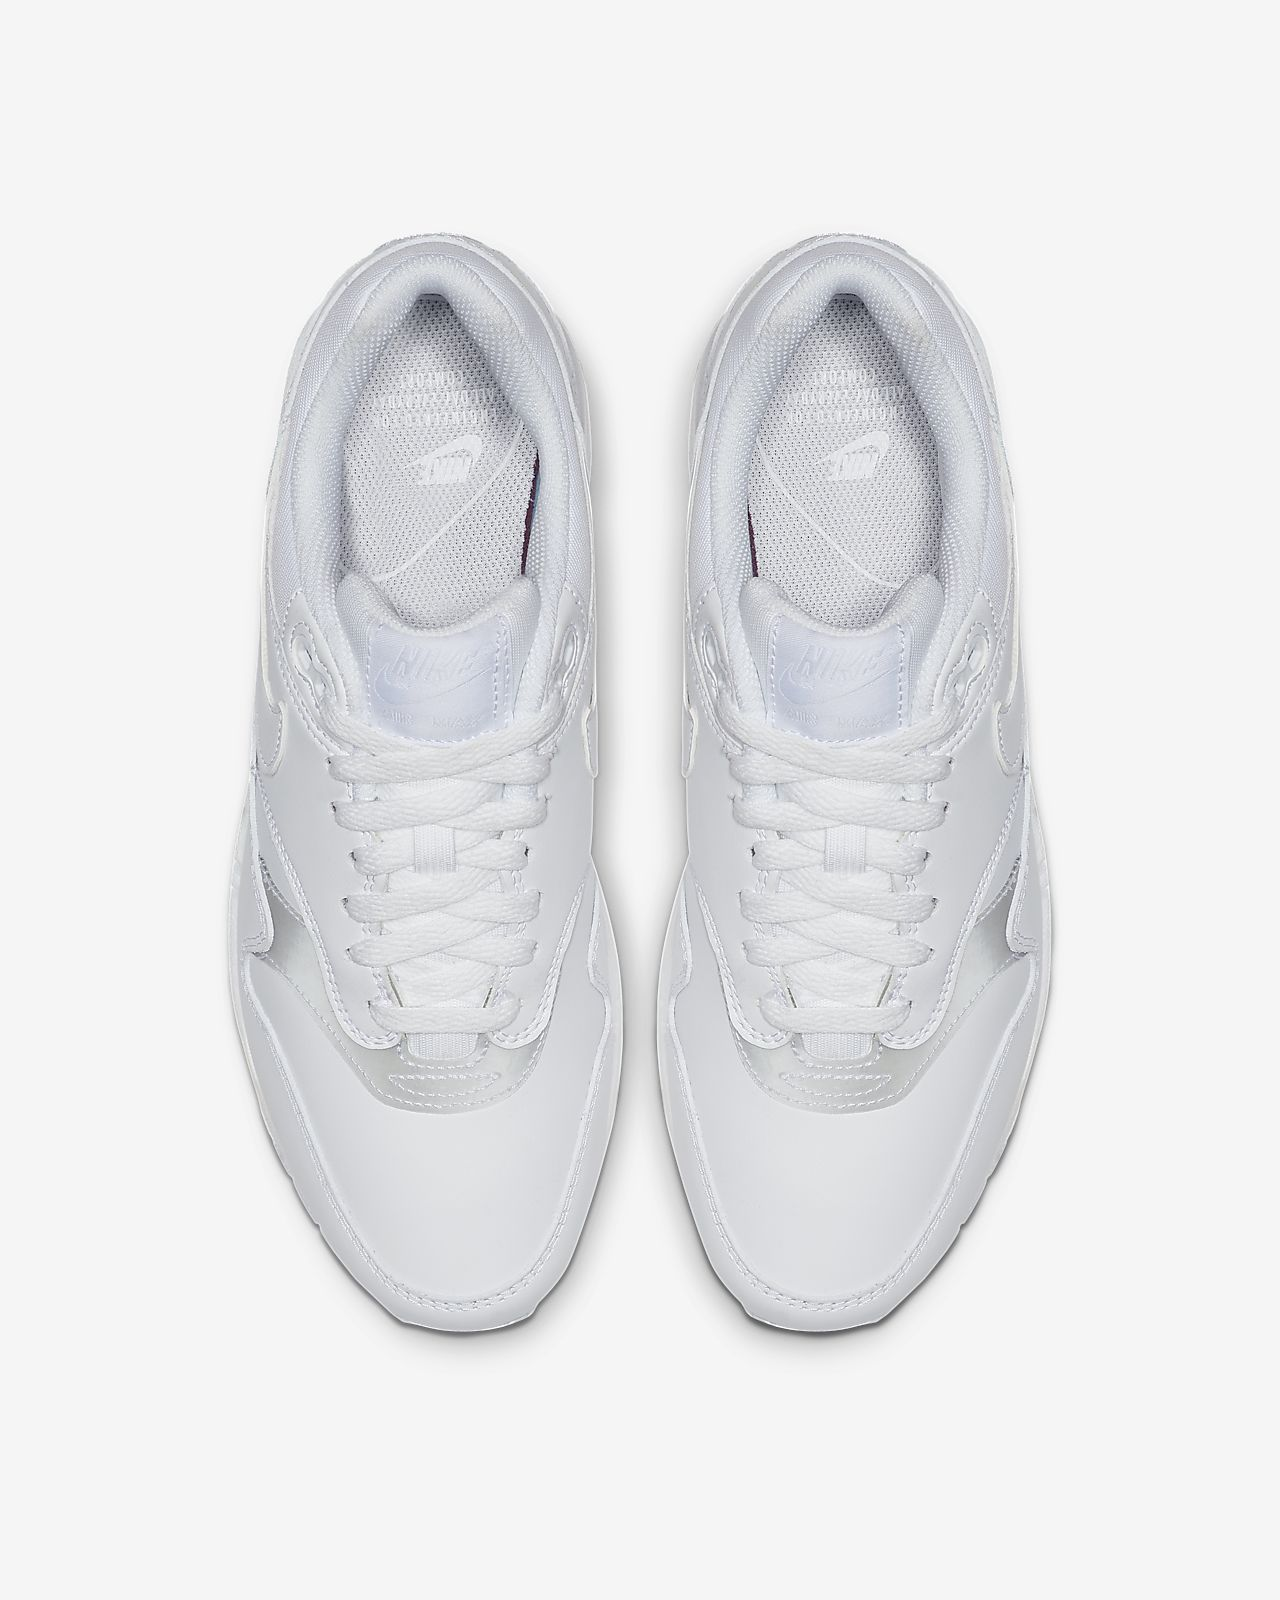 the latest 57d38 2f0e3 Low Resolution Nike Air Max 1 Women s Shoe Nike Air Max 1 Women s Shoe